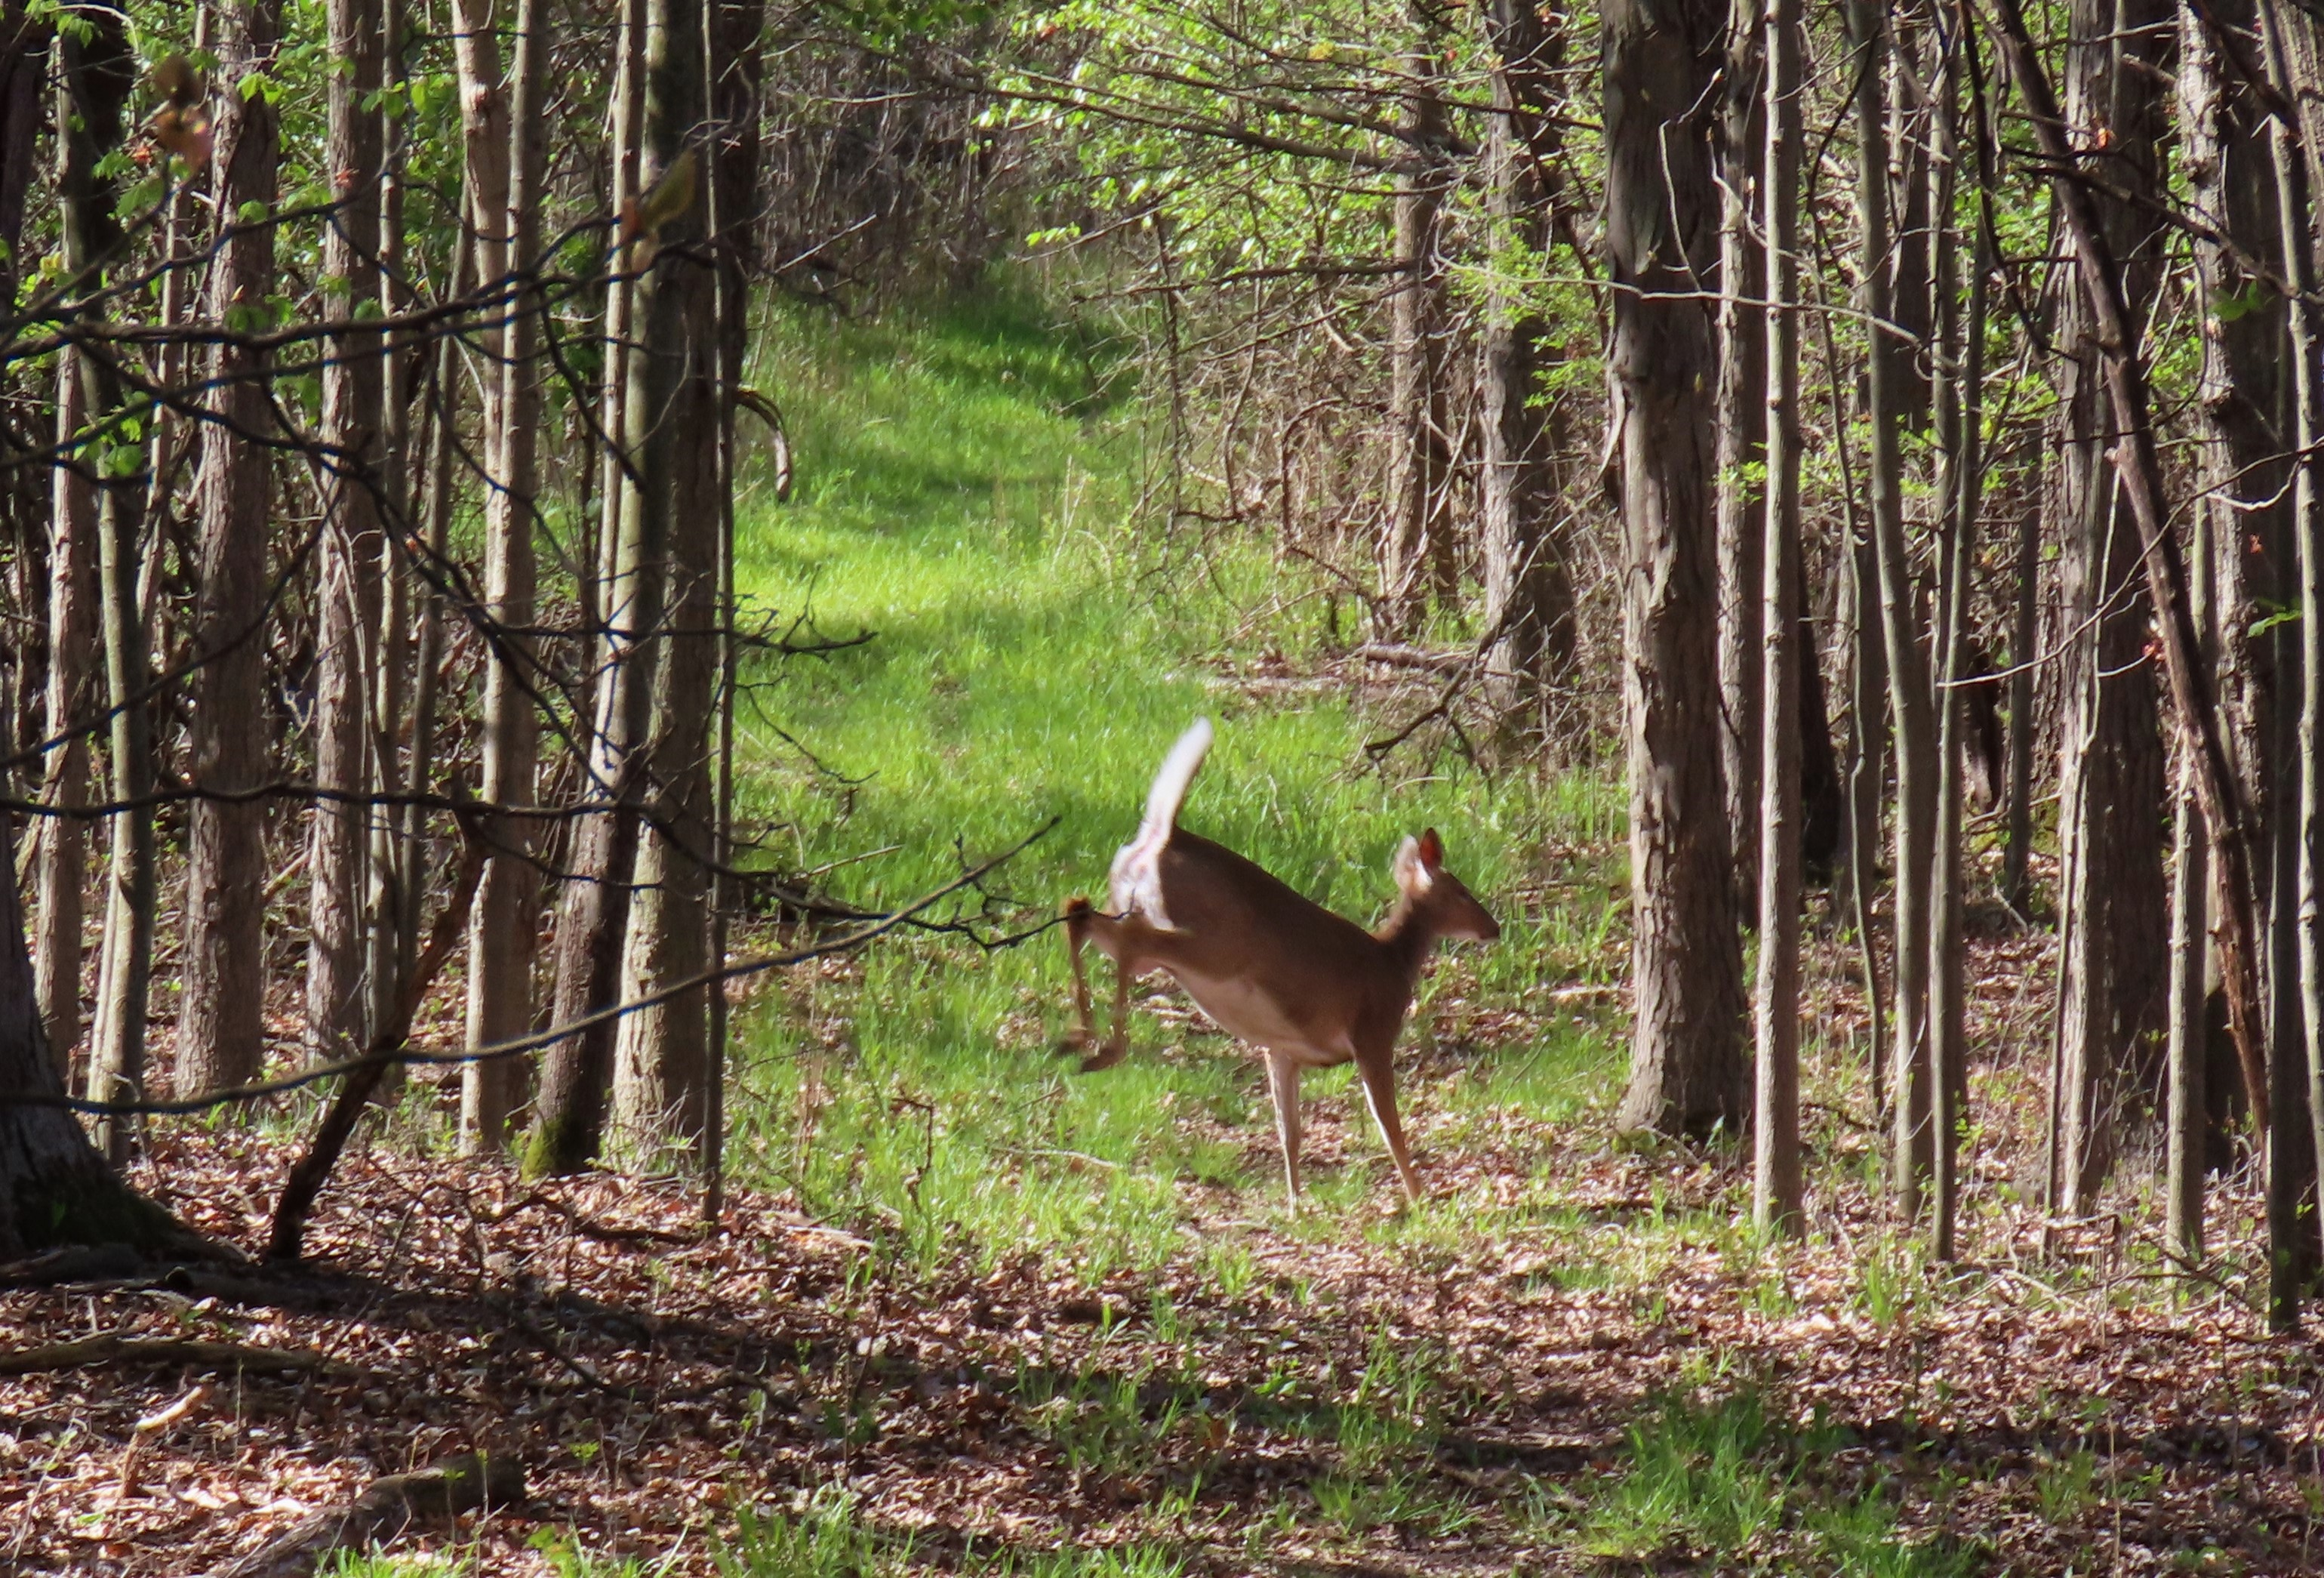 A white-tailed deer bounds across a trail